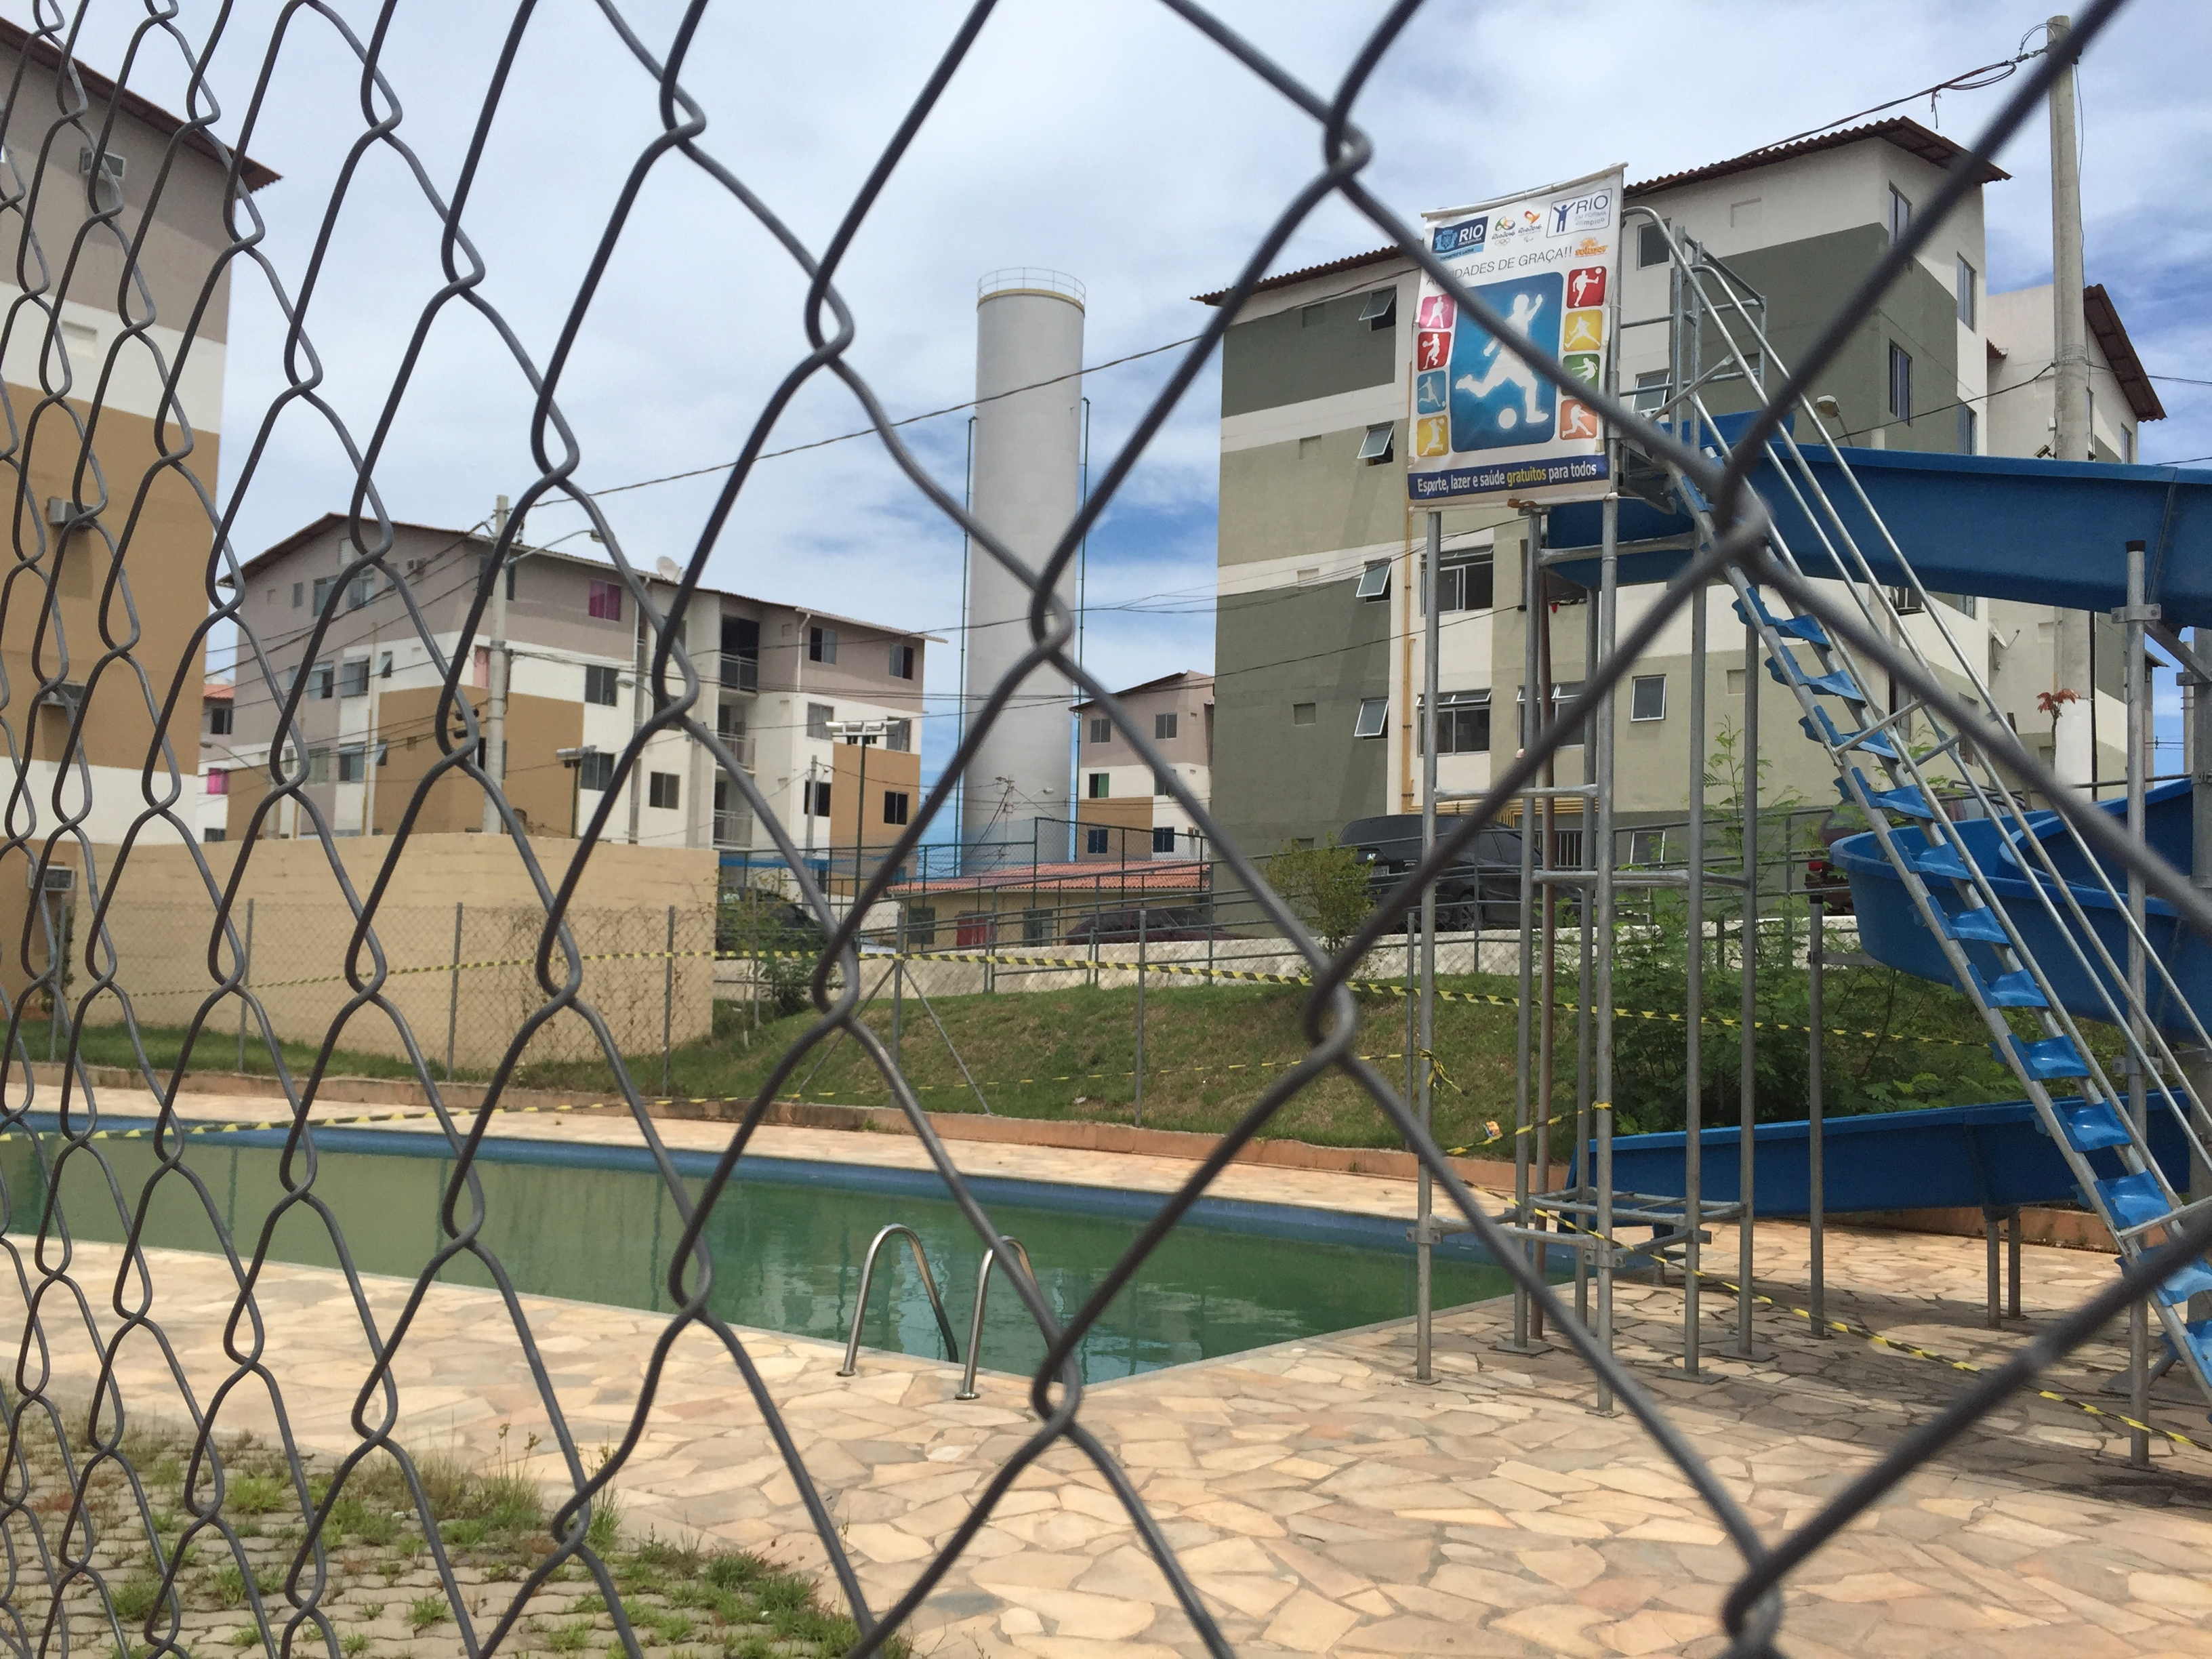 The oft-touted swimming pool has remained full of algae and unusable for many months now. Residents were told by the City that they now must maintain it themselves.